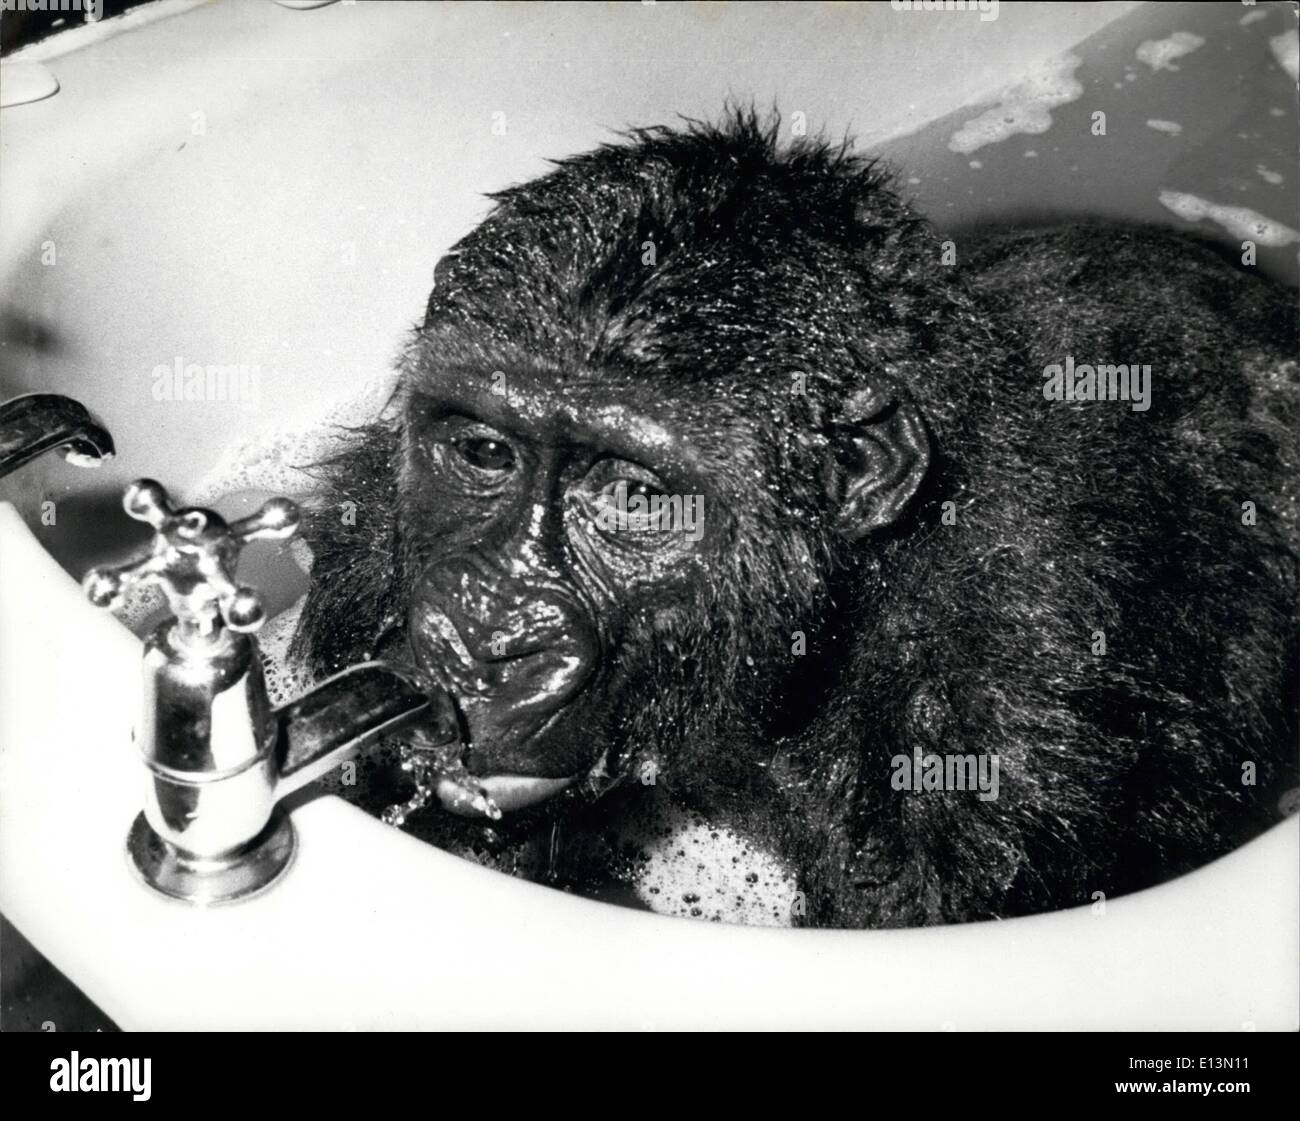 Mar. 02, 2012 - Gorilla getting a sip of water while in his bath. - Stock Image